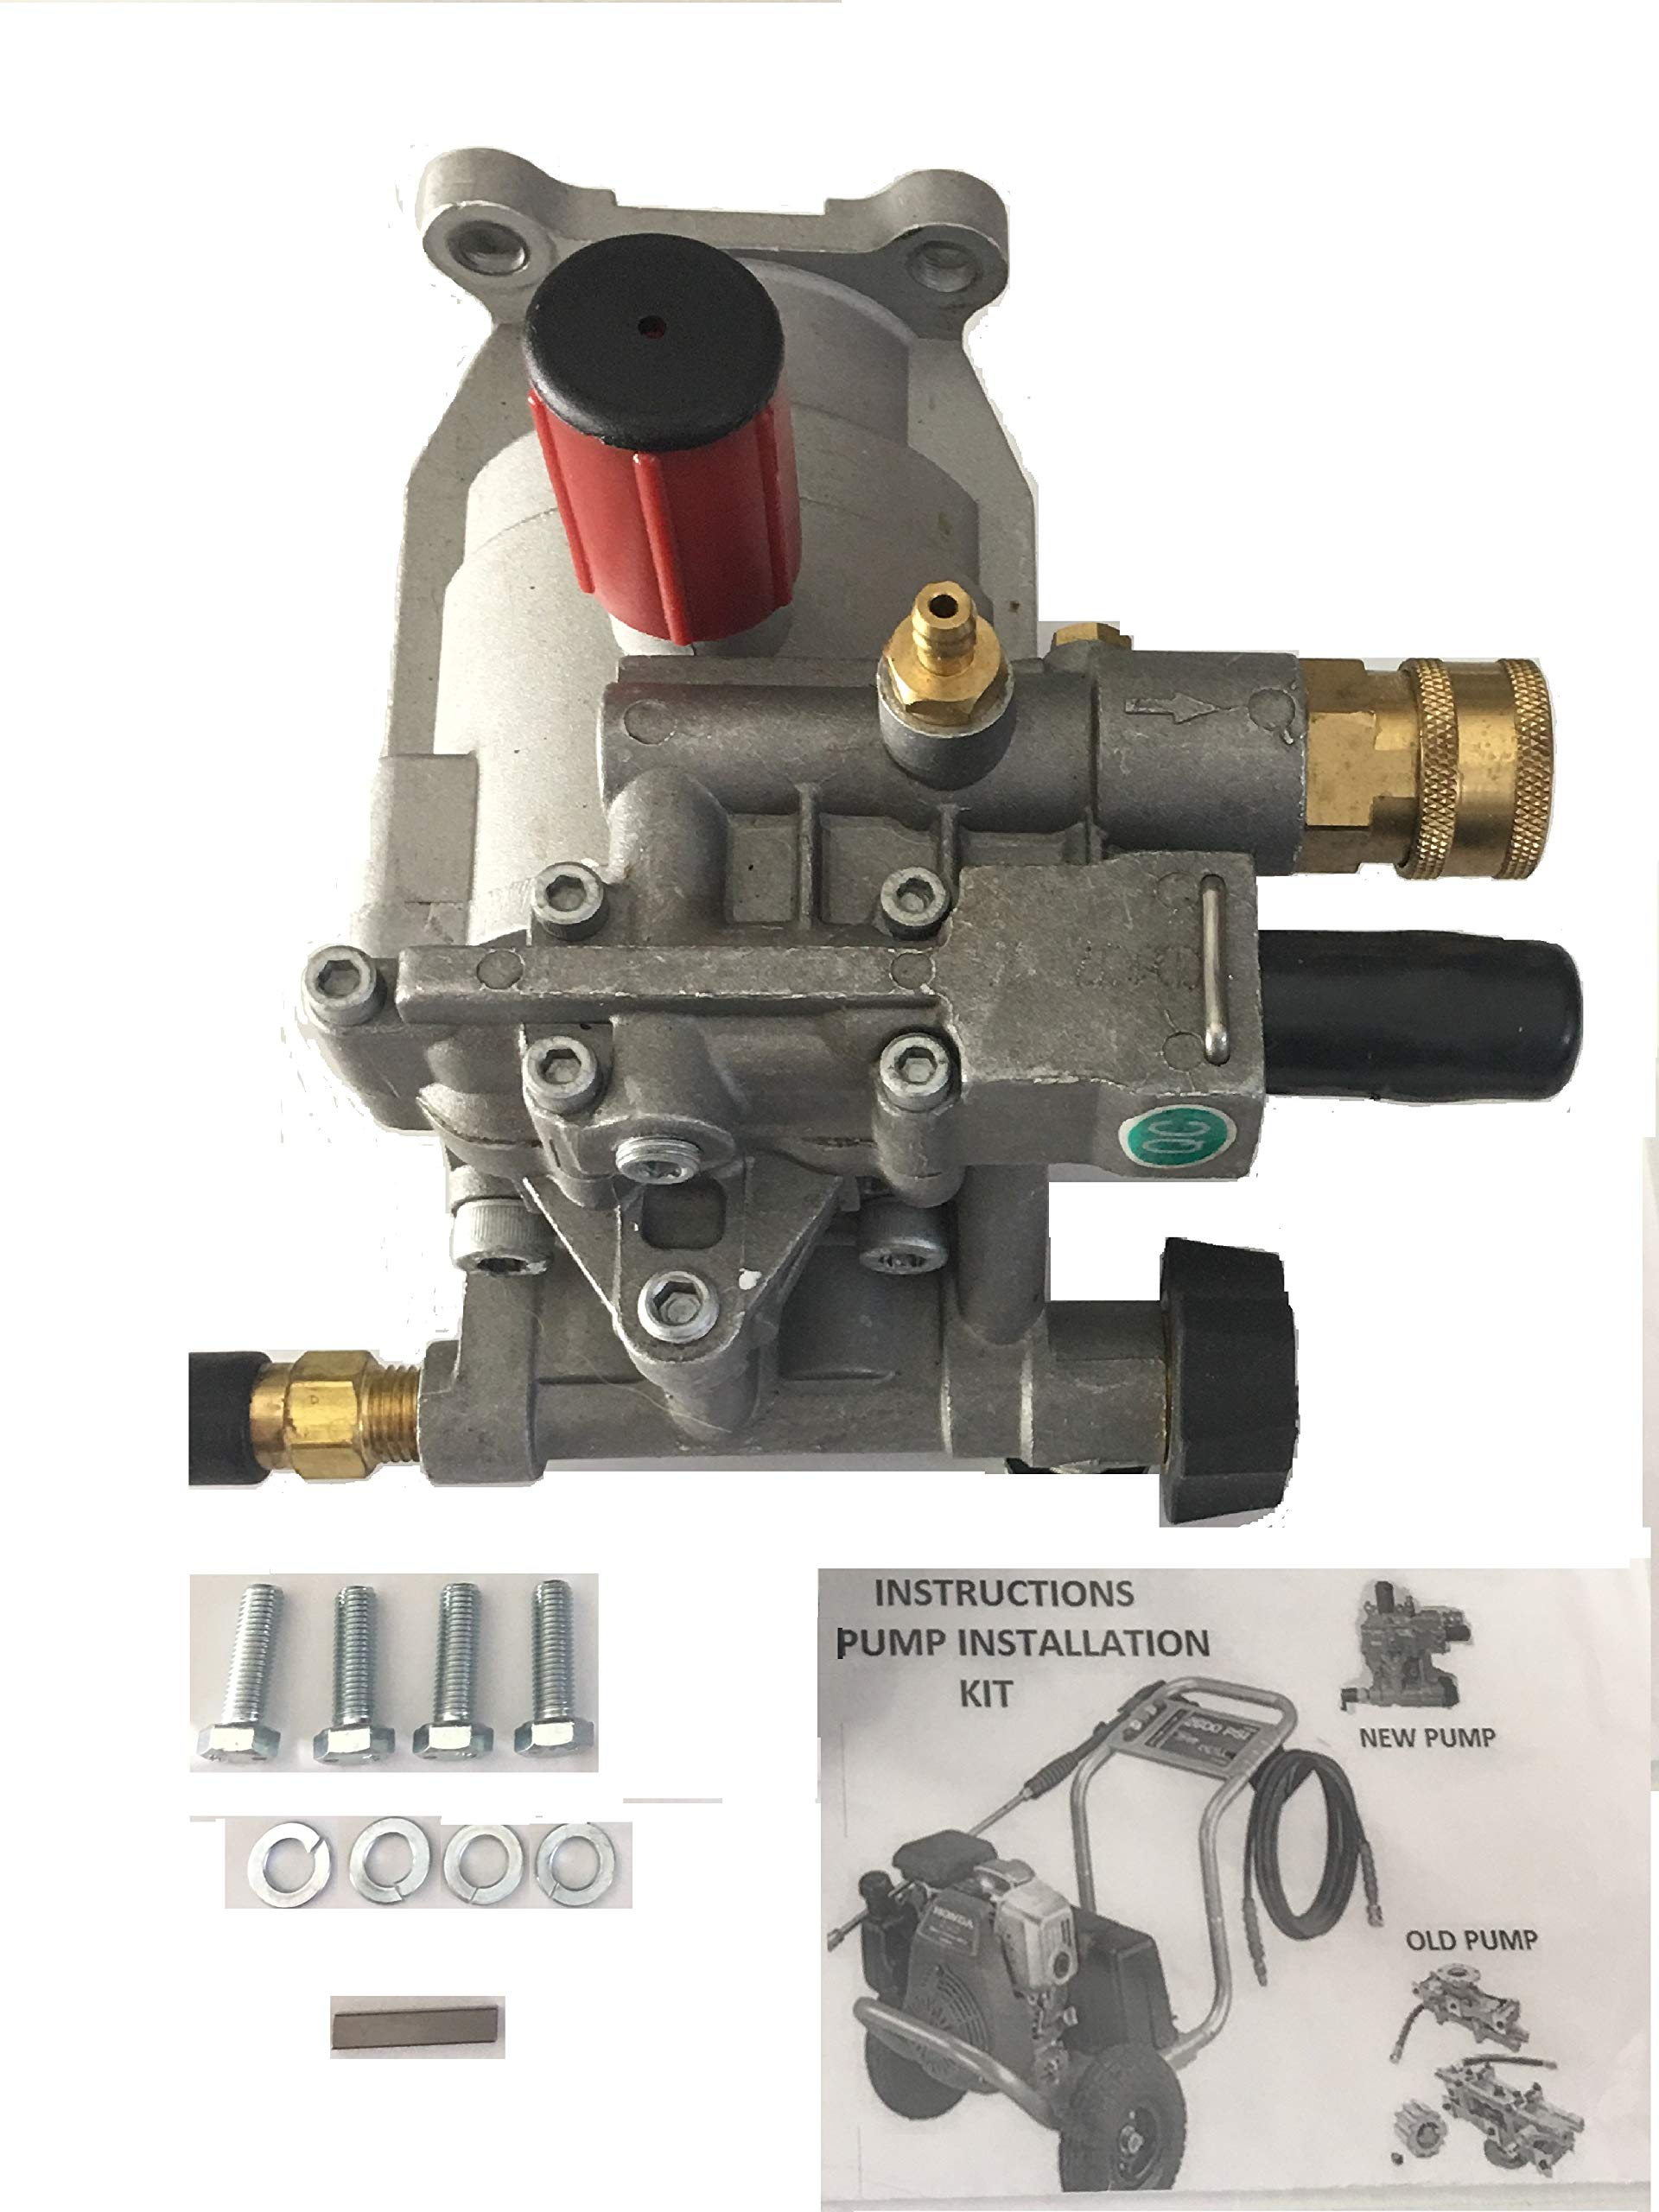 EXCELL DEVILBISS Pressure Washer KIT Replacement Pump A01801, A14292, D28744, Models XR2500 XR2625 XR2600 XC2600 EXHA2425 Radial Pump, Horizontal 7/8 Shaft by PRC